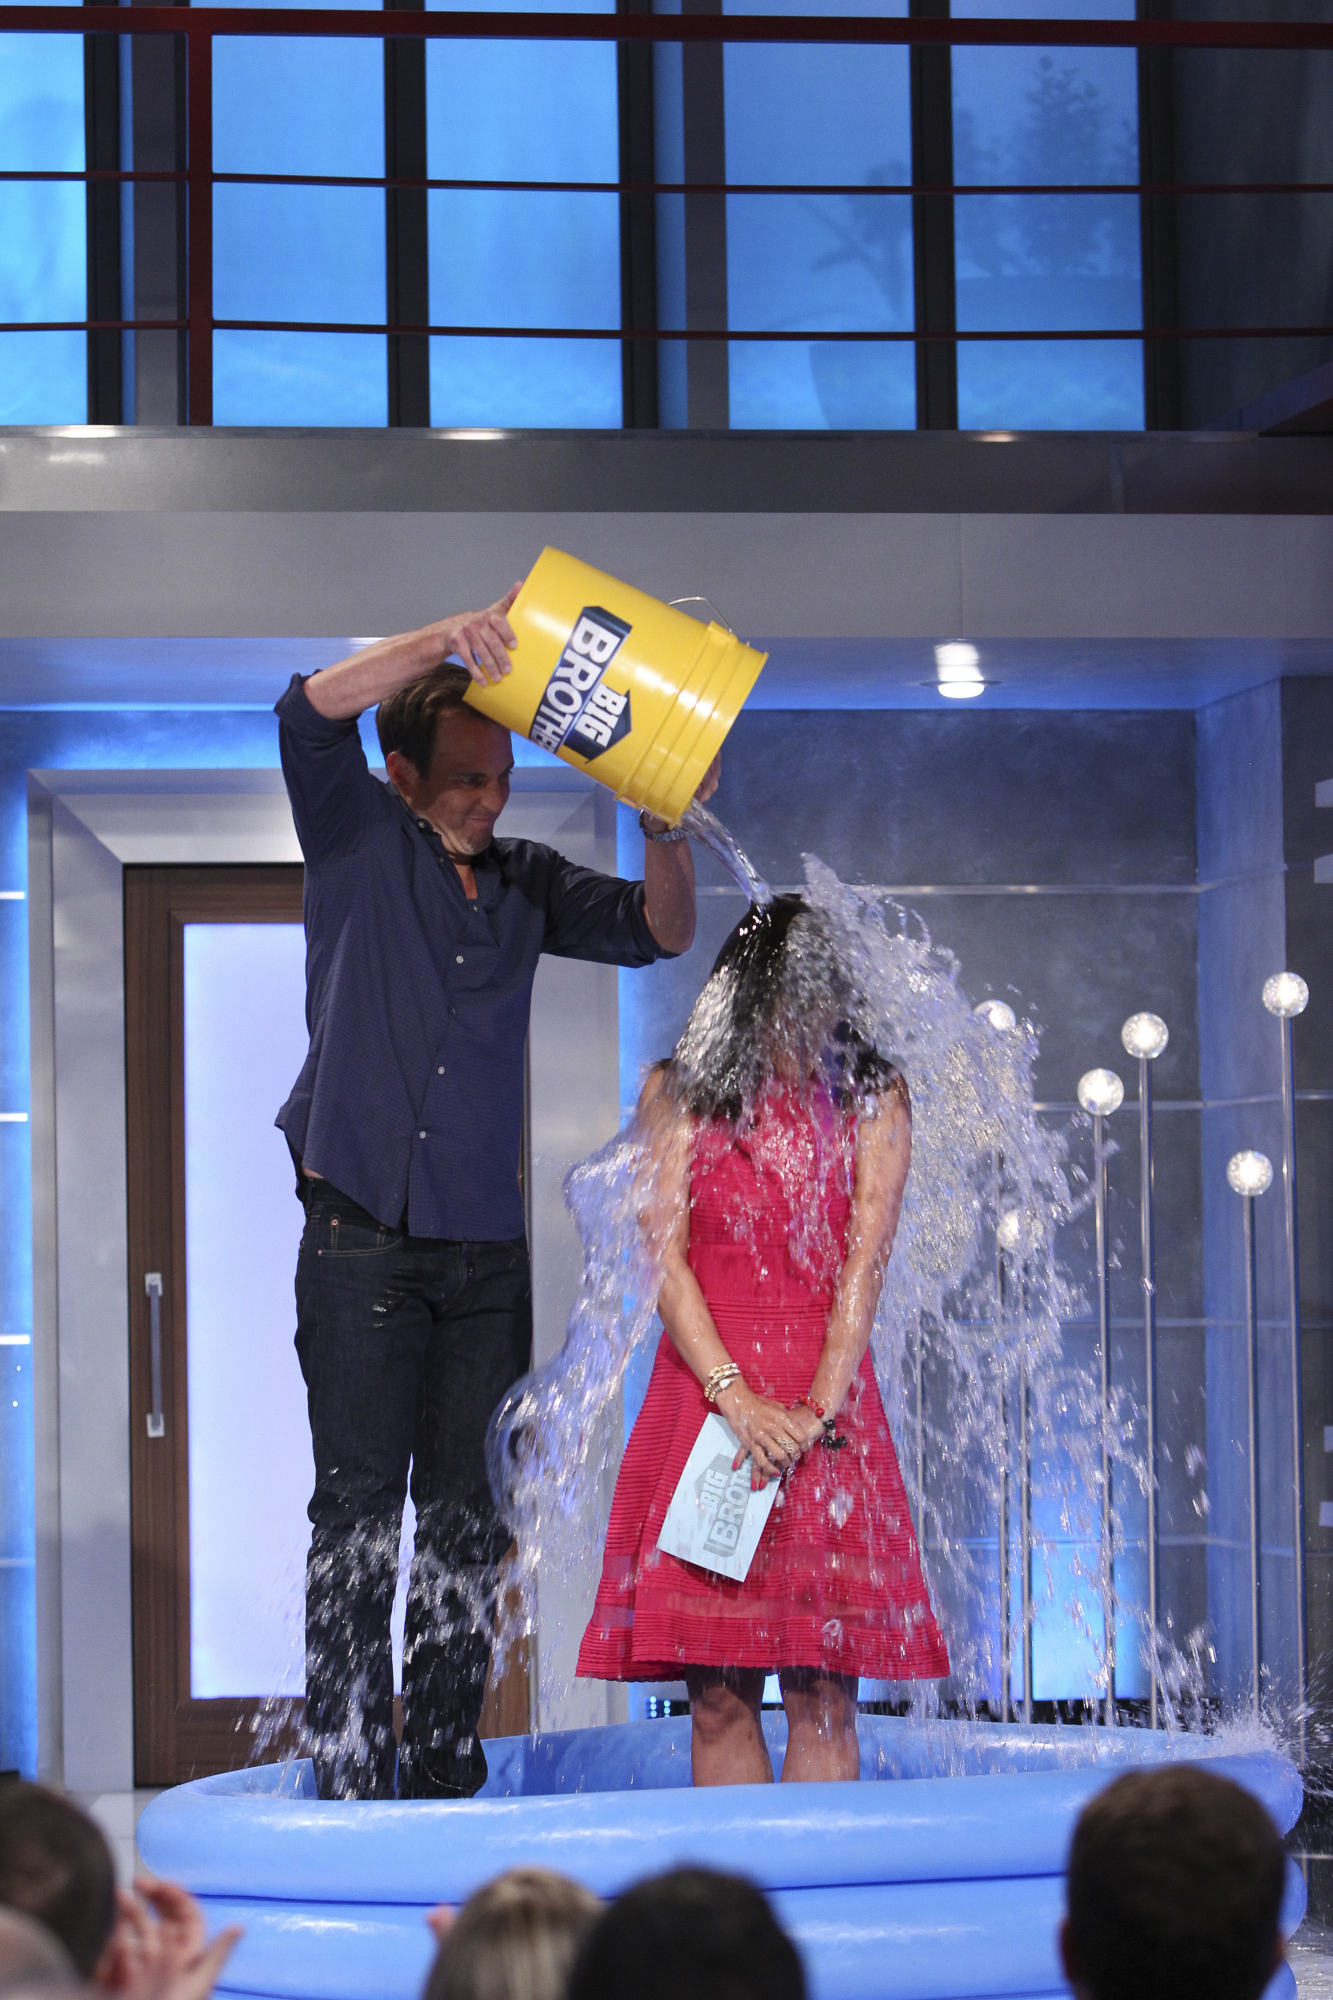 Julie accepts the ALS Ice Bucket Challenge